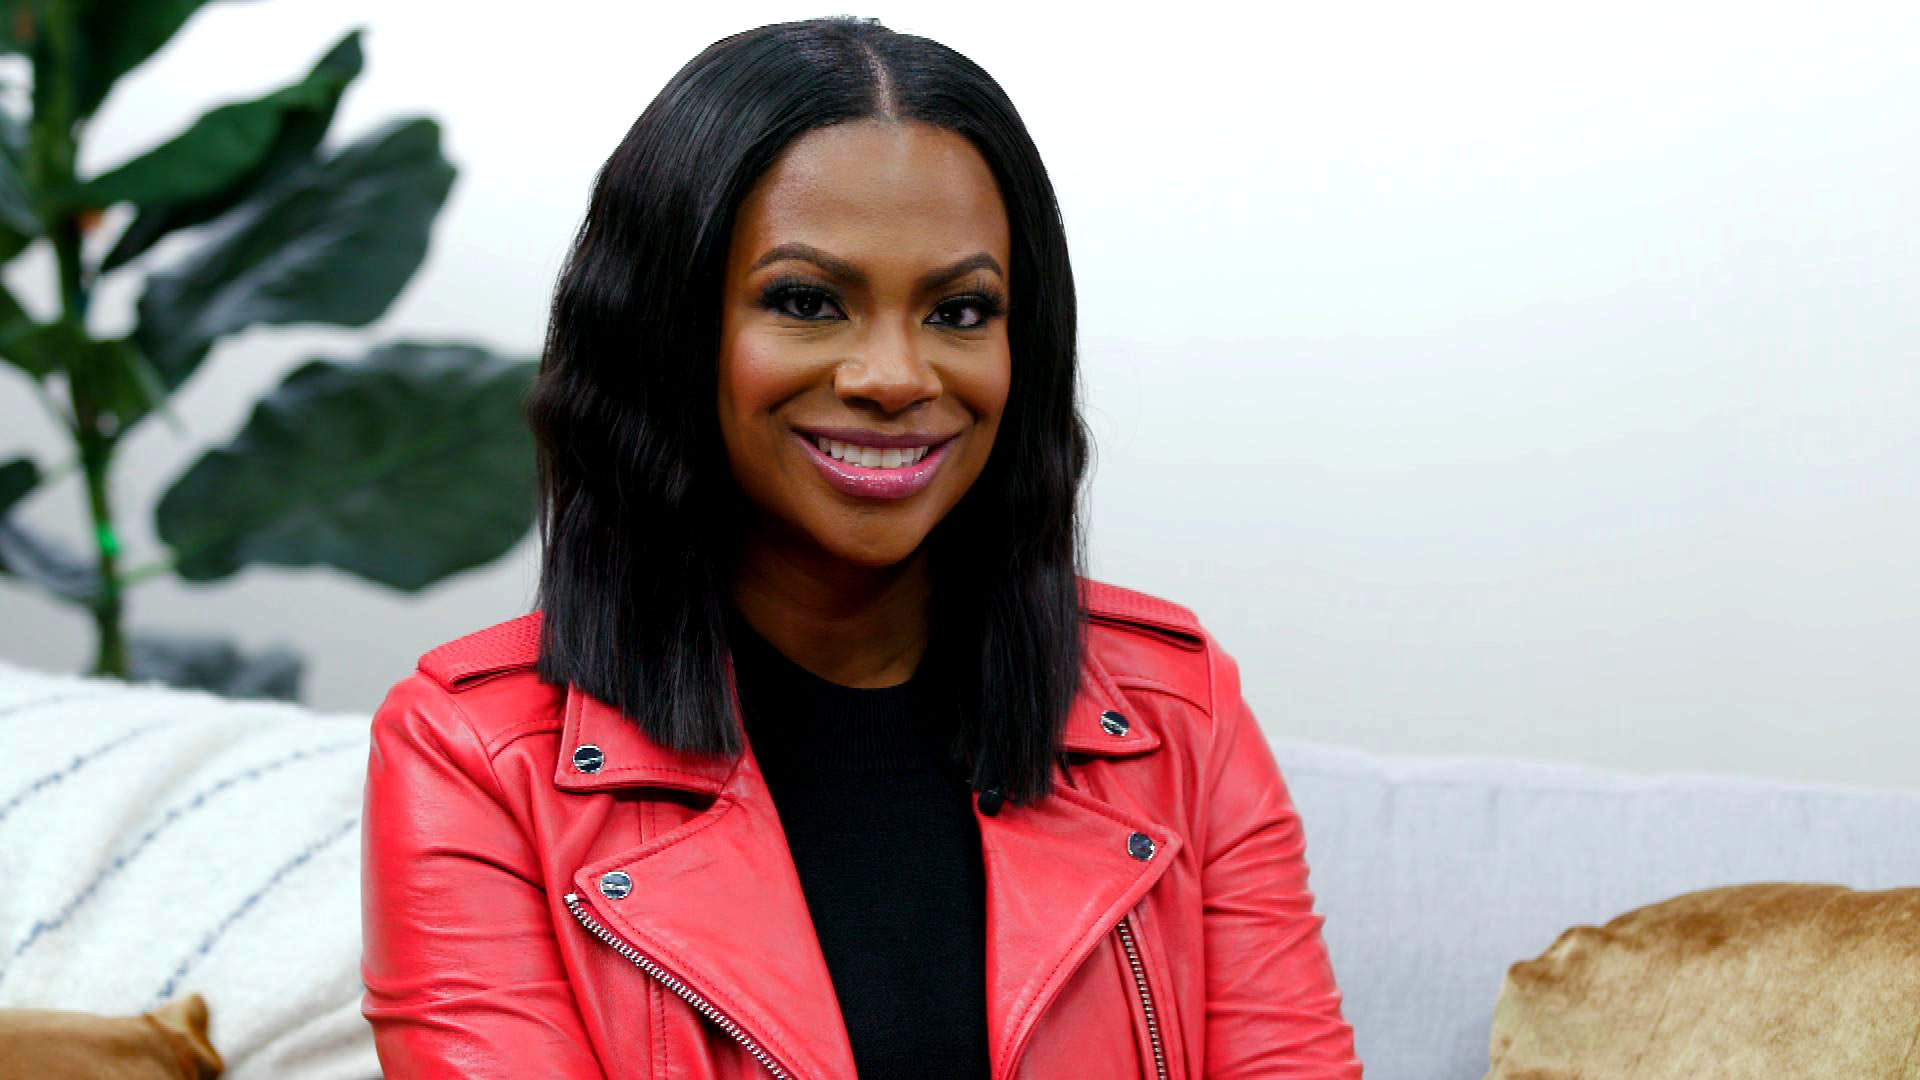 kandi-burruss-poses-with-cynthia-bailey-and-makes-fans-day